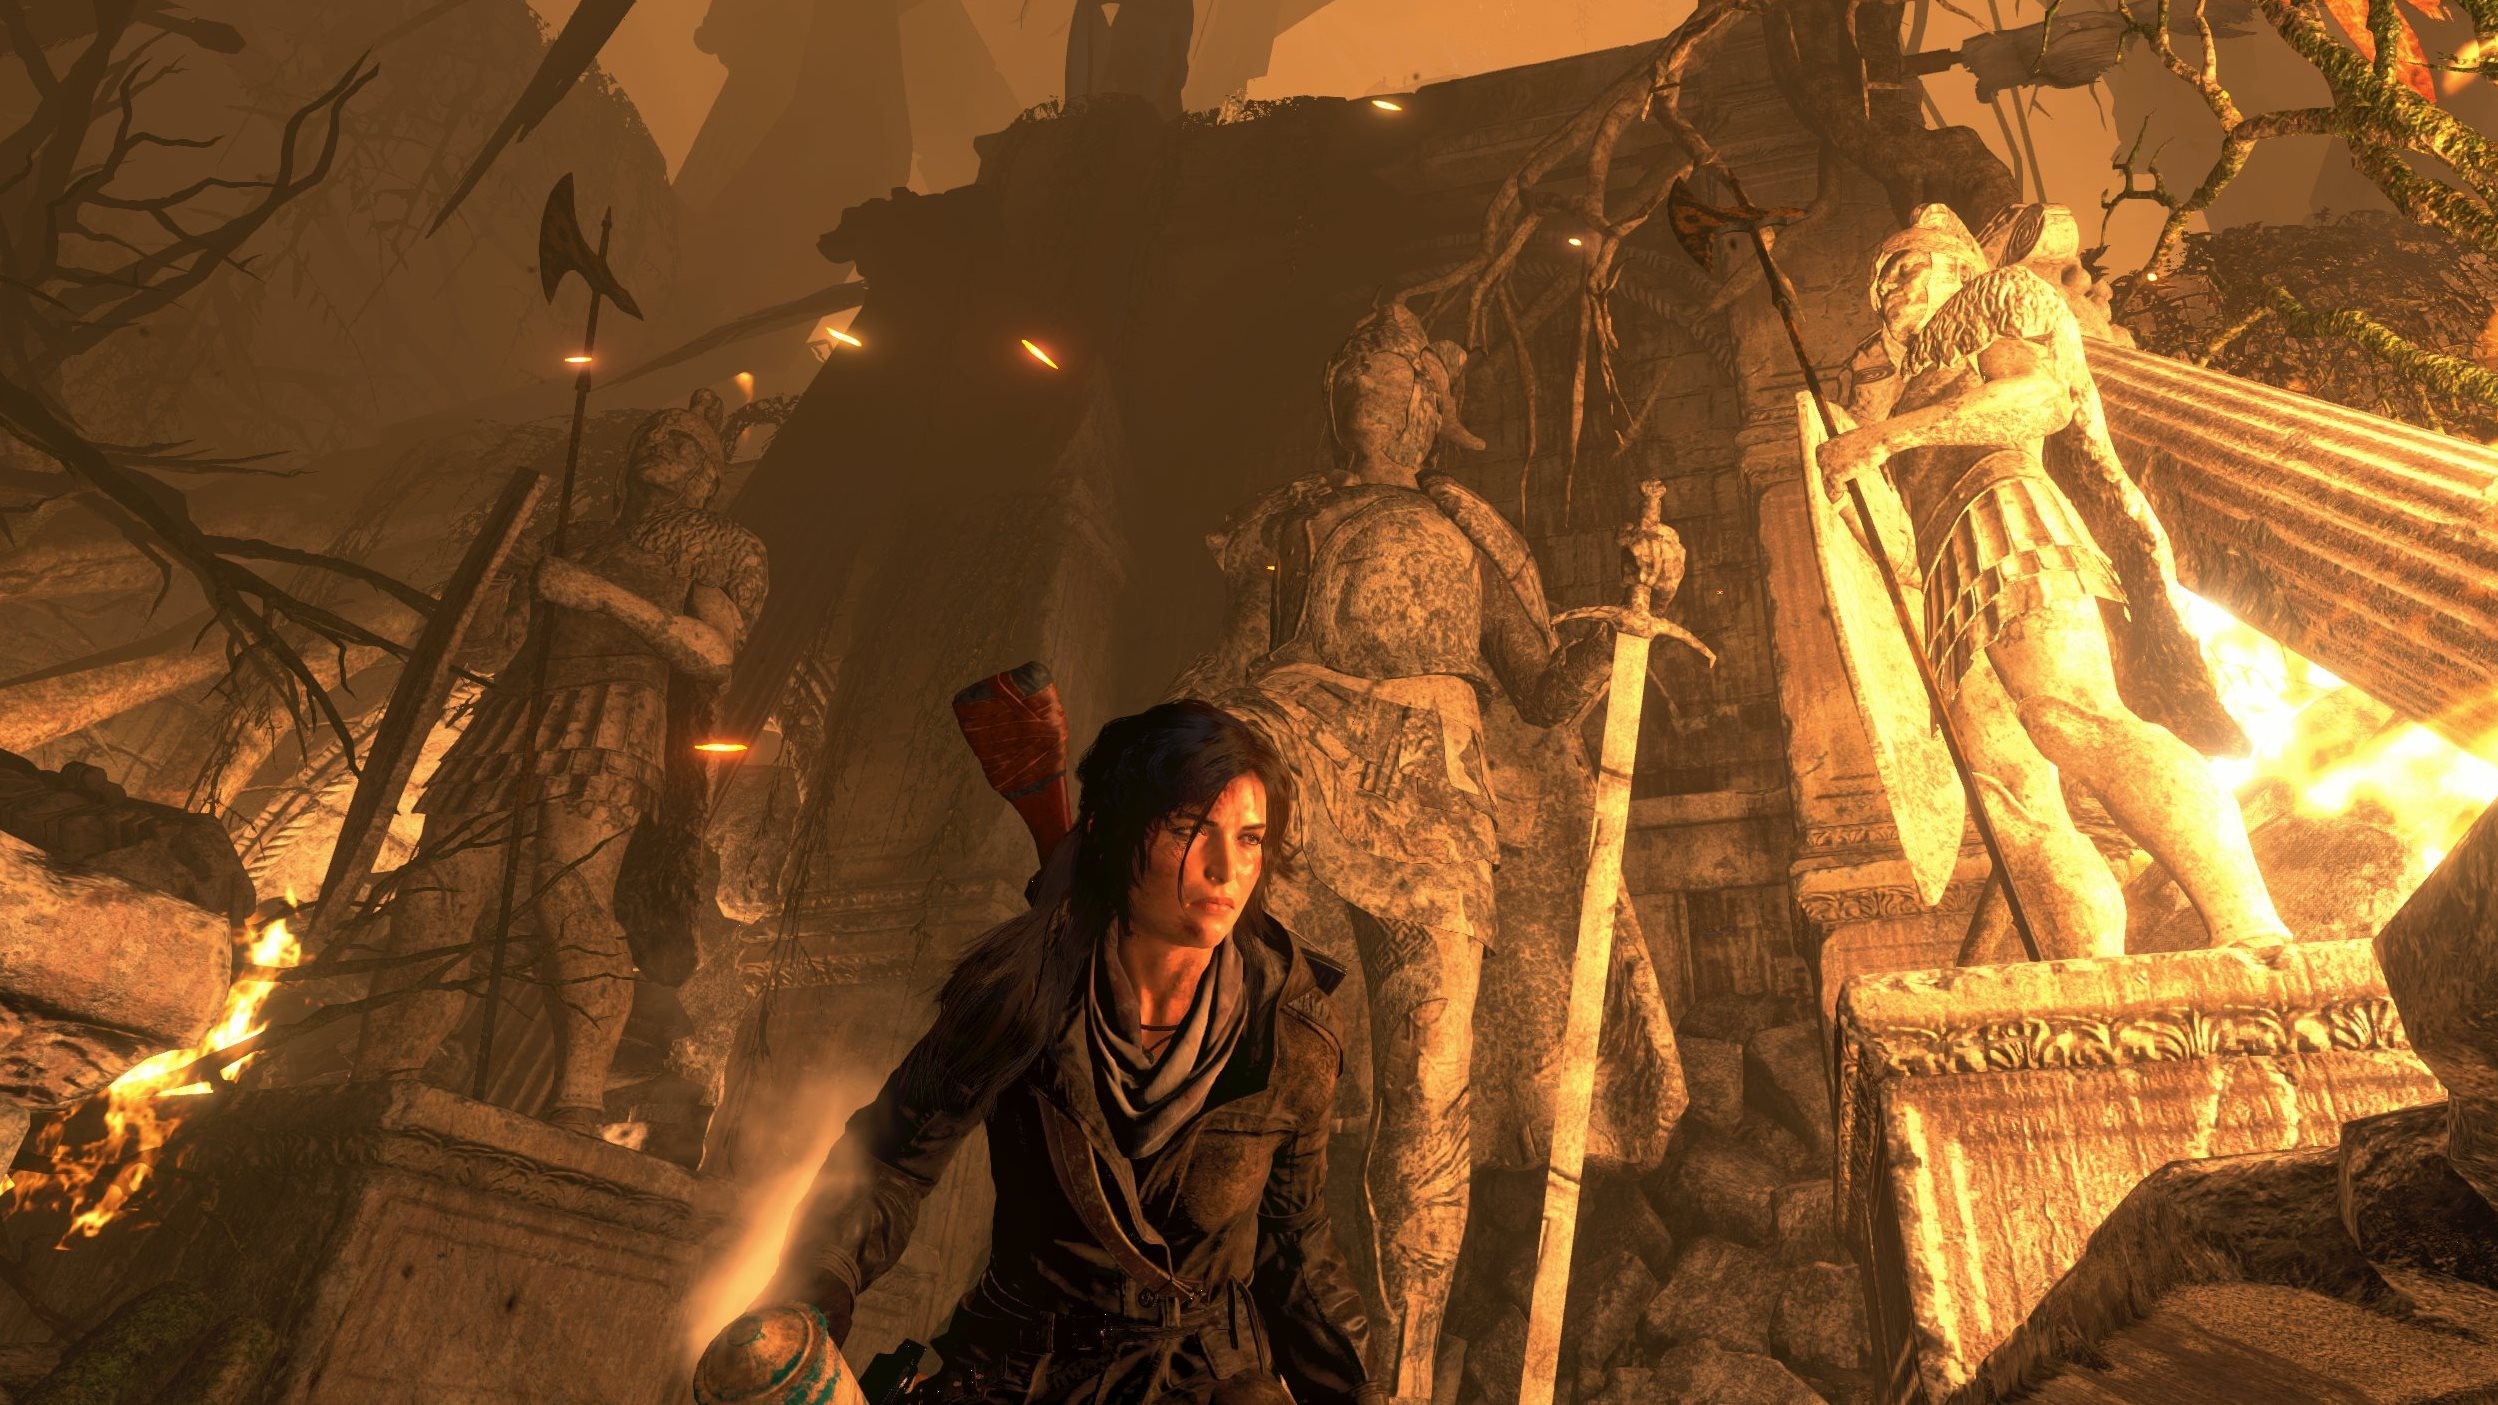 Lara's statue impression needs work, as does this lame-ass caption.